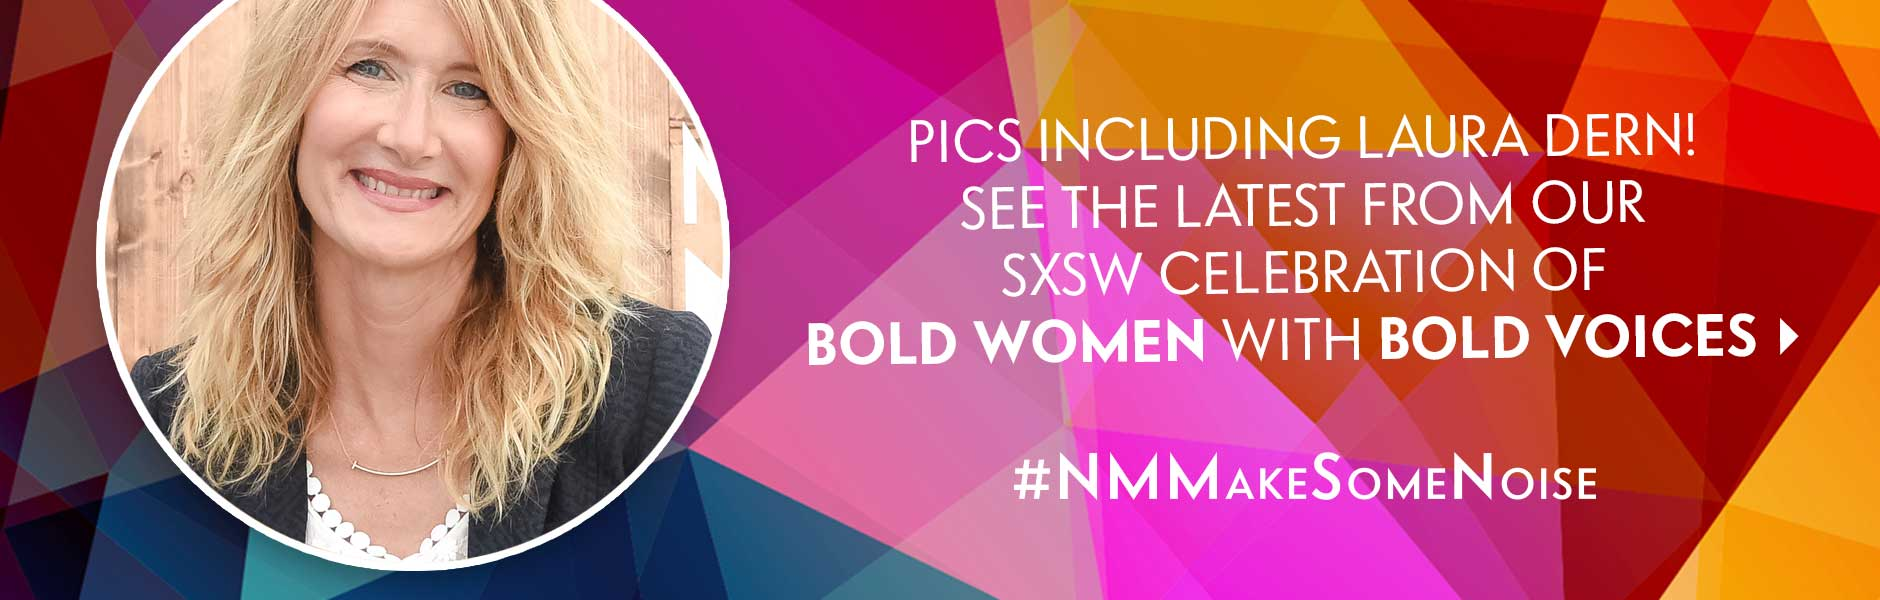 #NMMakeSomeNoise: Celebrating bold women with bold voices